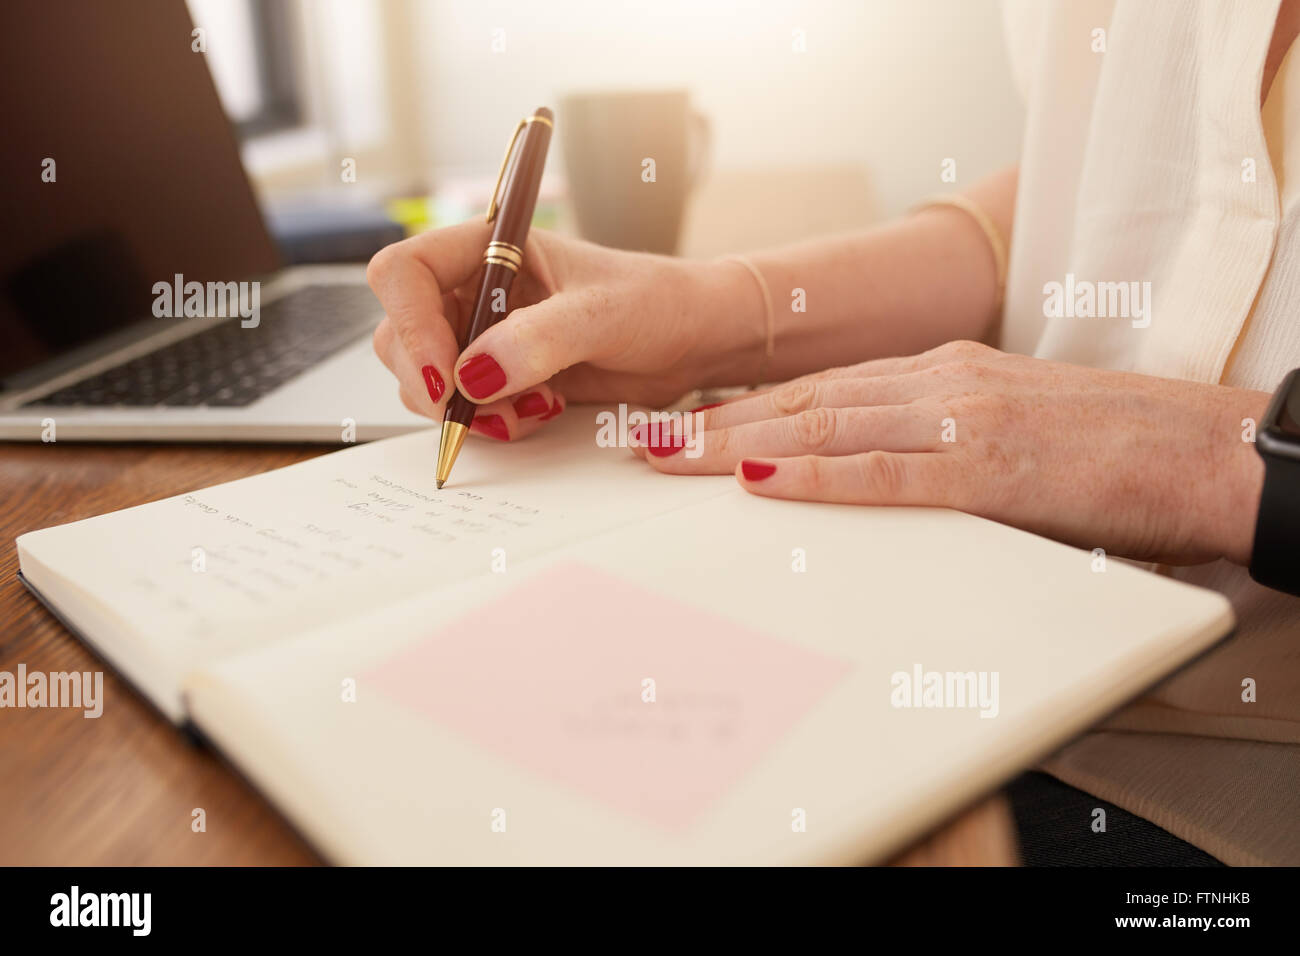 Close up image of woman writing notes dans son journal. Businesswoman assise à son bureau et prendre des notes Photo Stock